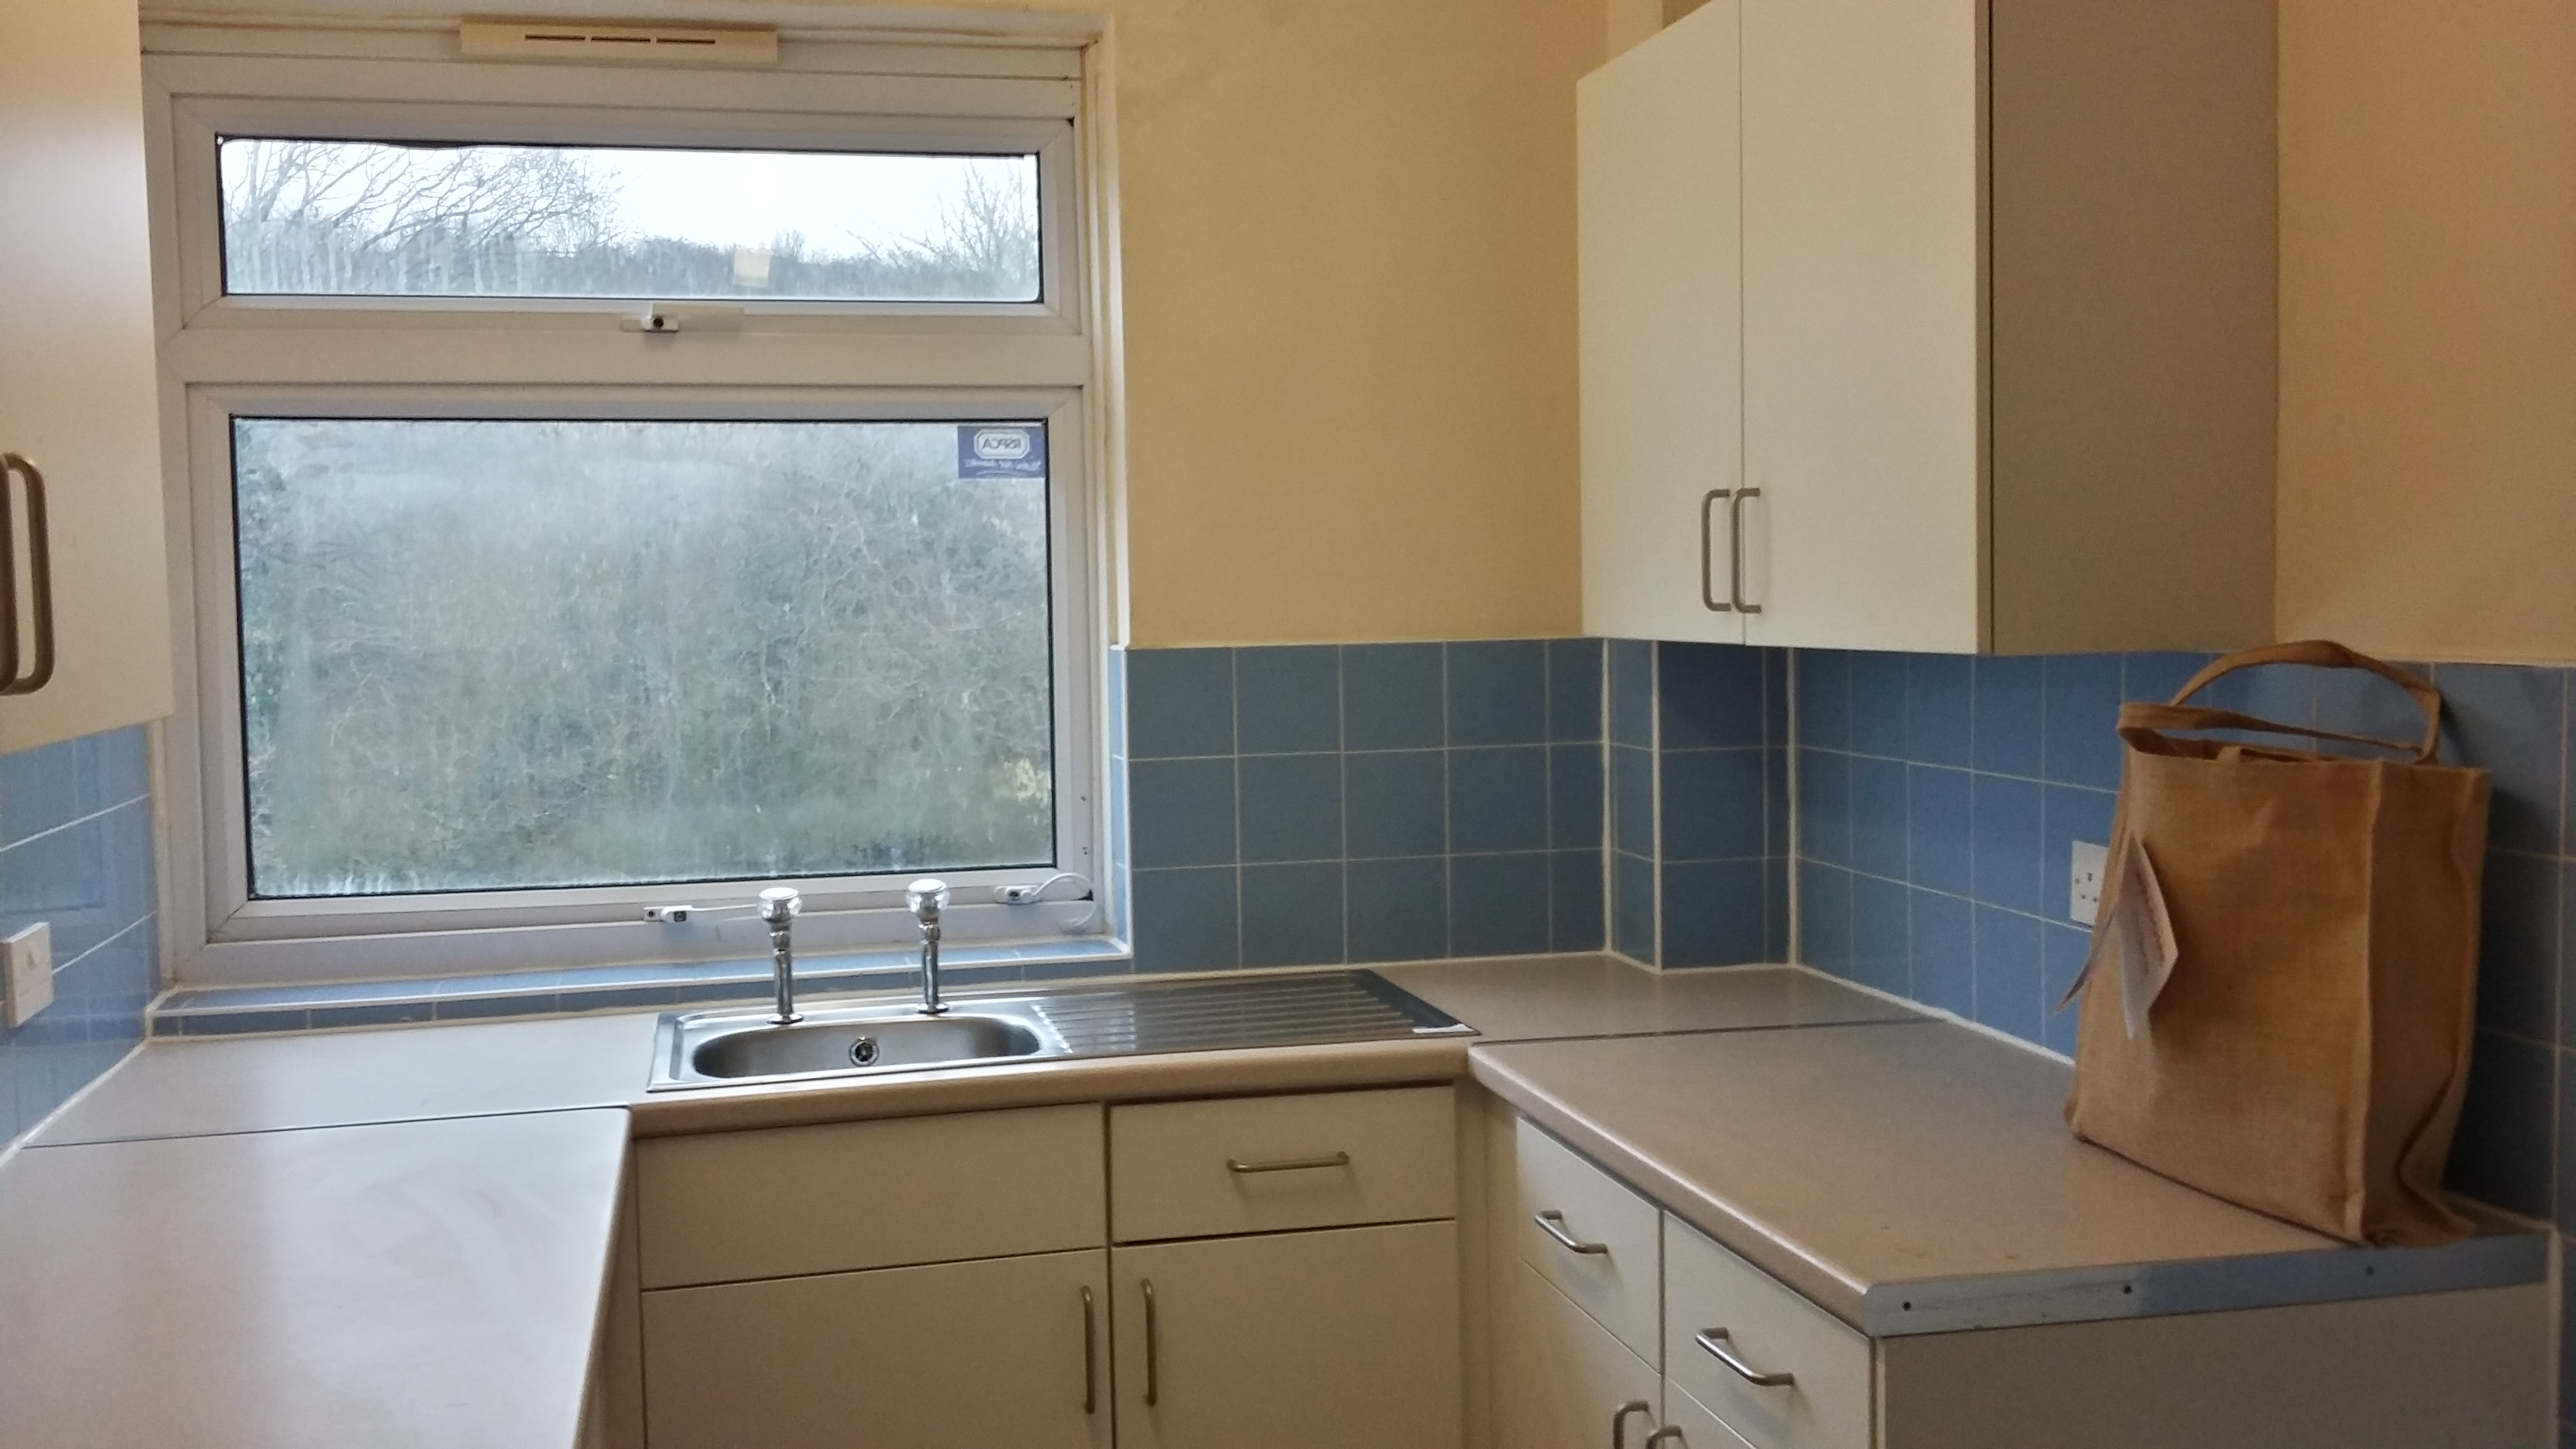 Kitchen Tiles High Wycombe become a property guardian in high wycombe